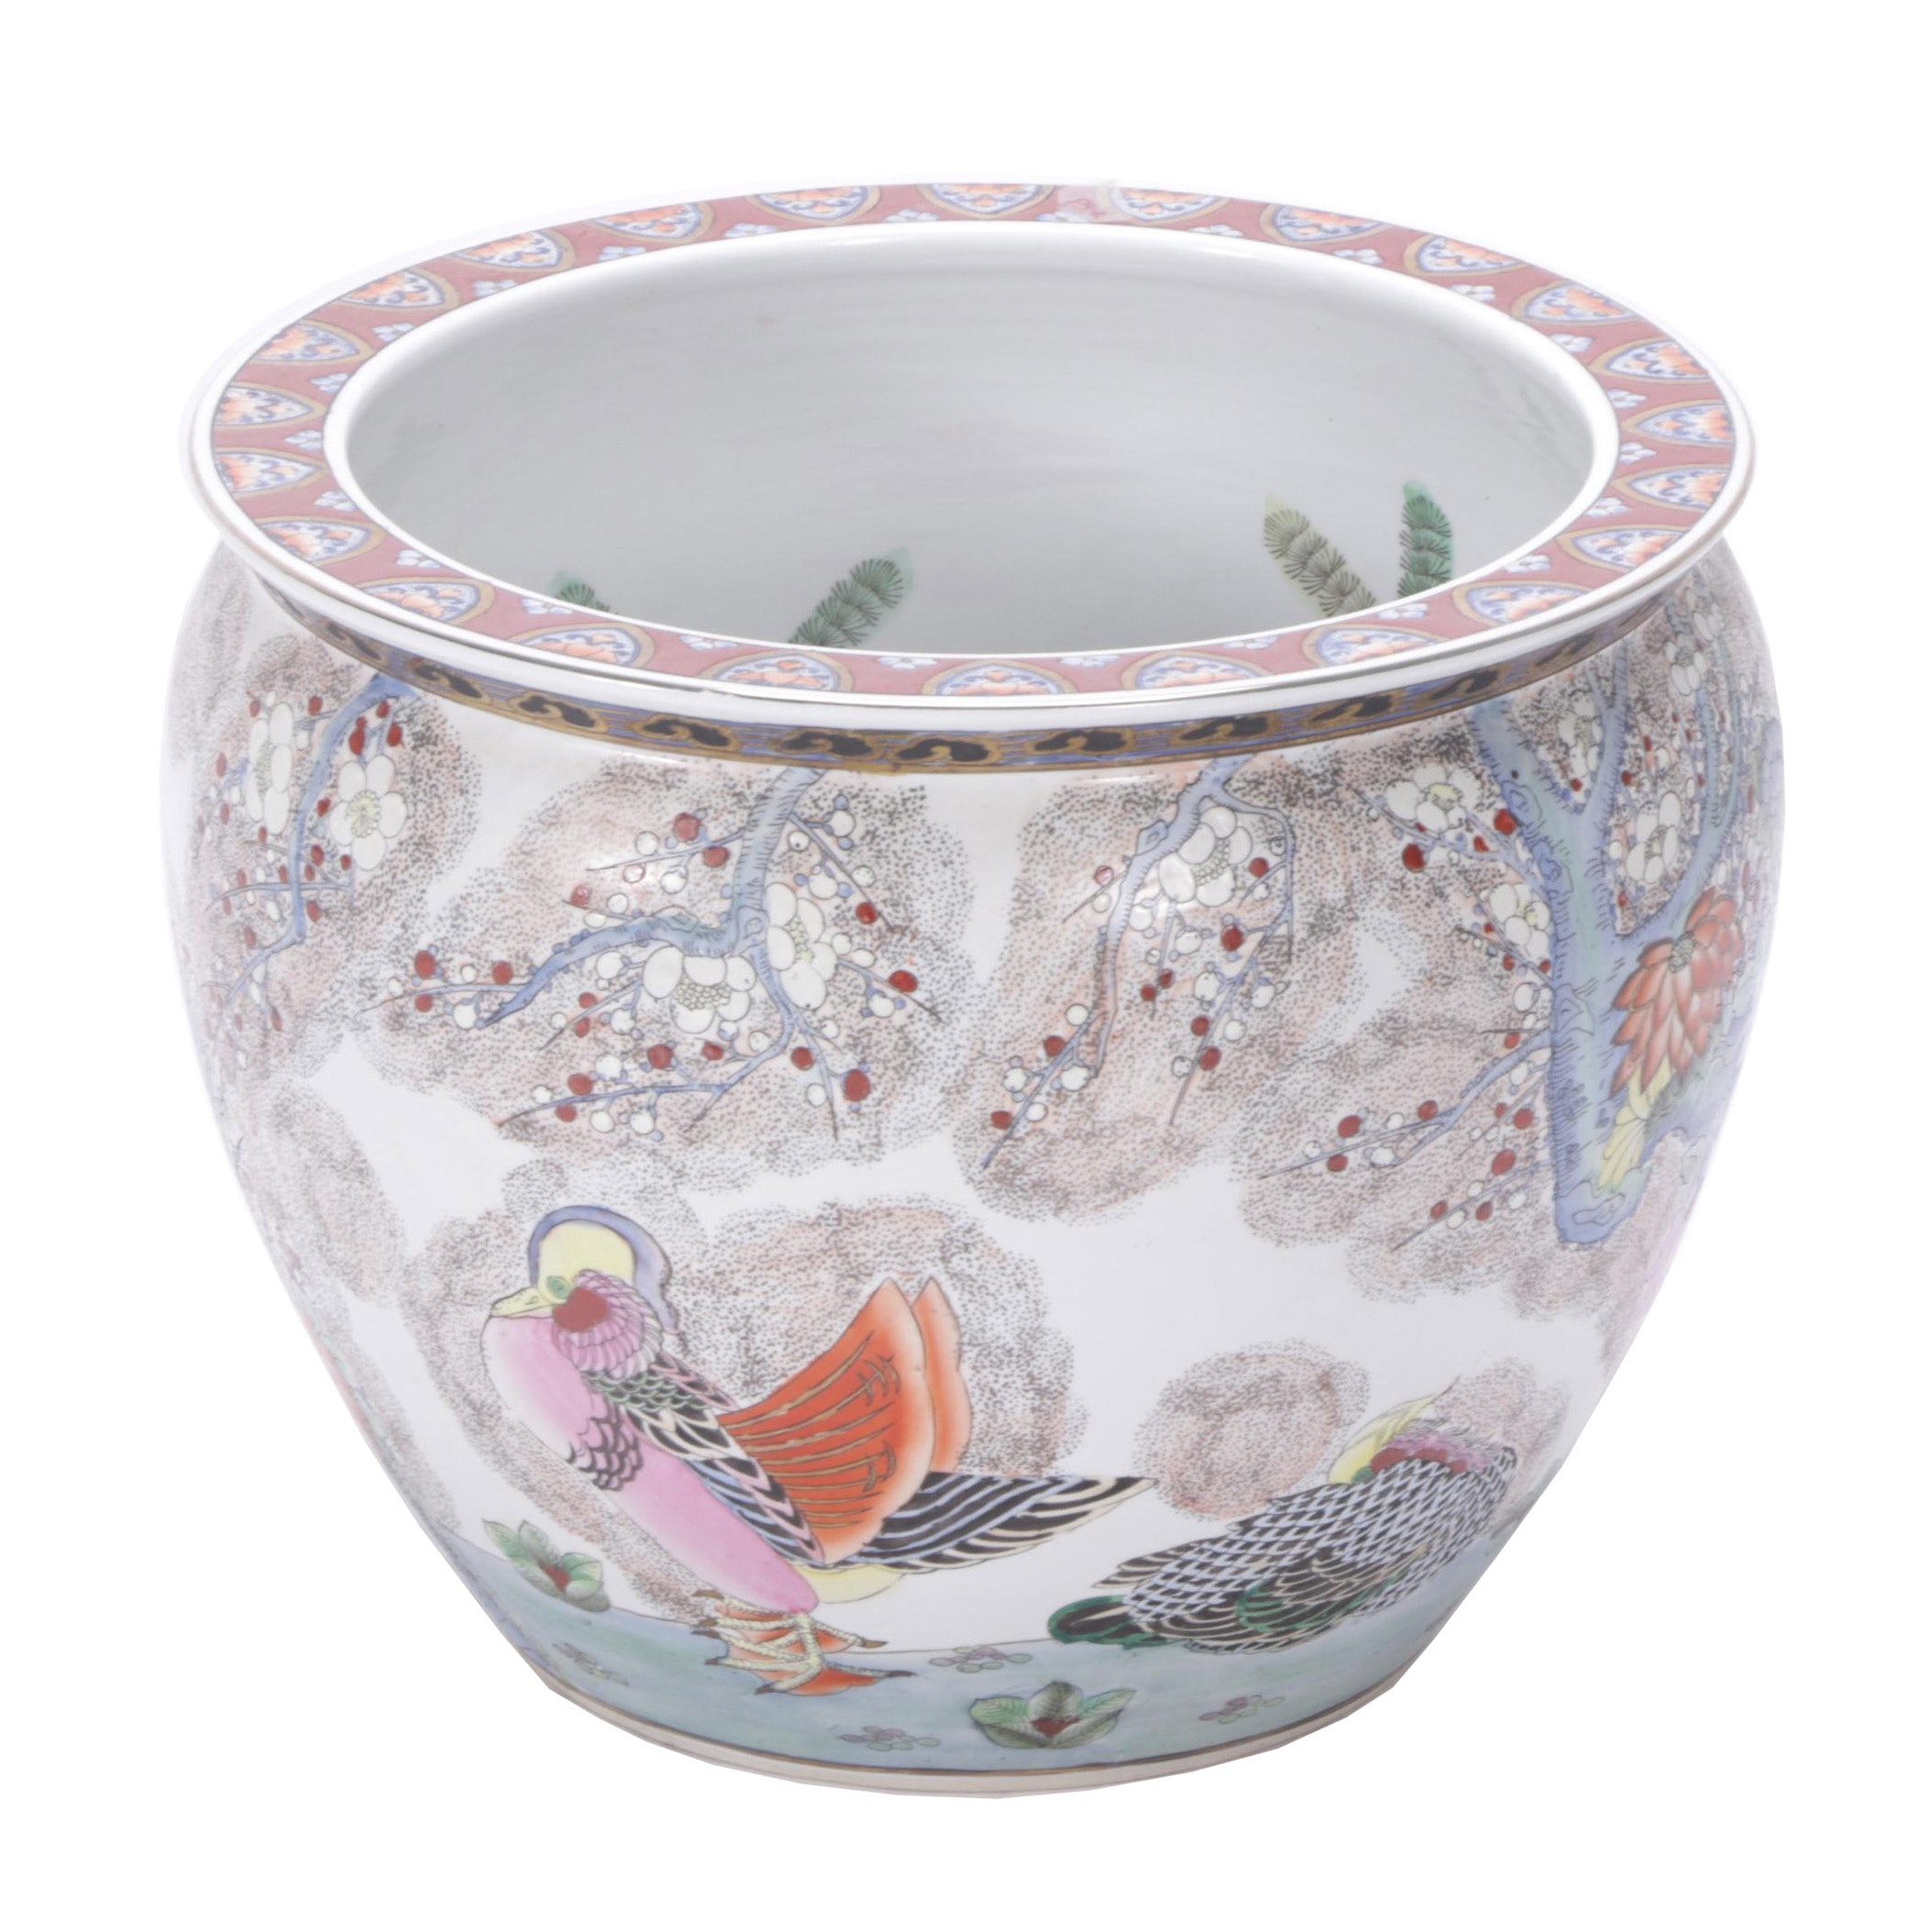 Contemporary Chinese Ceramic Planter with Bird, Floral and Fish Designs